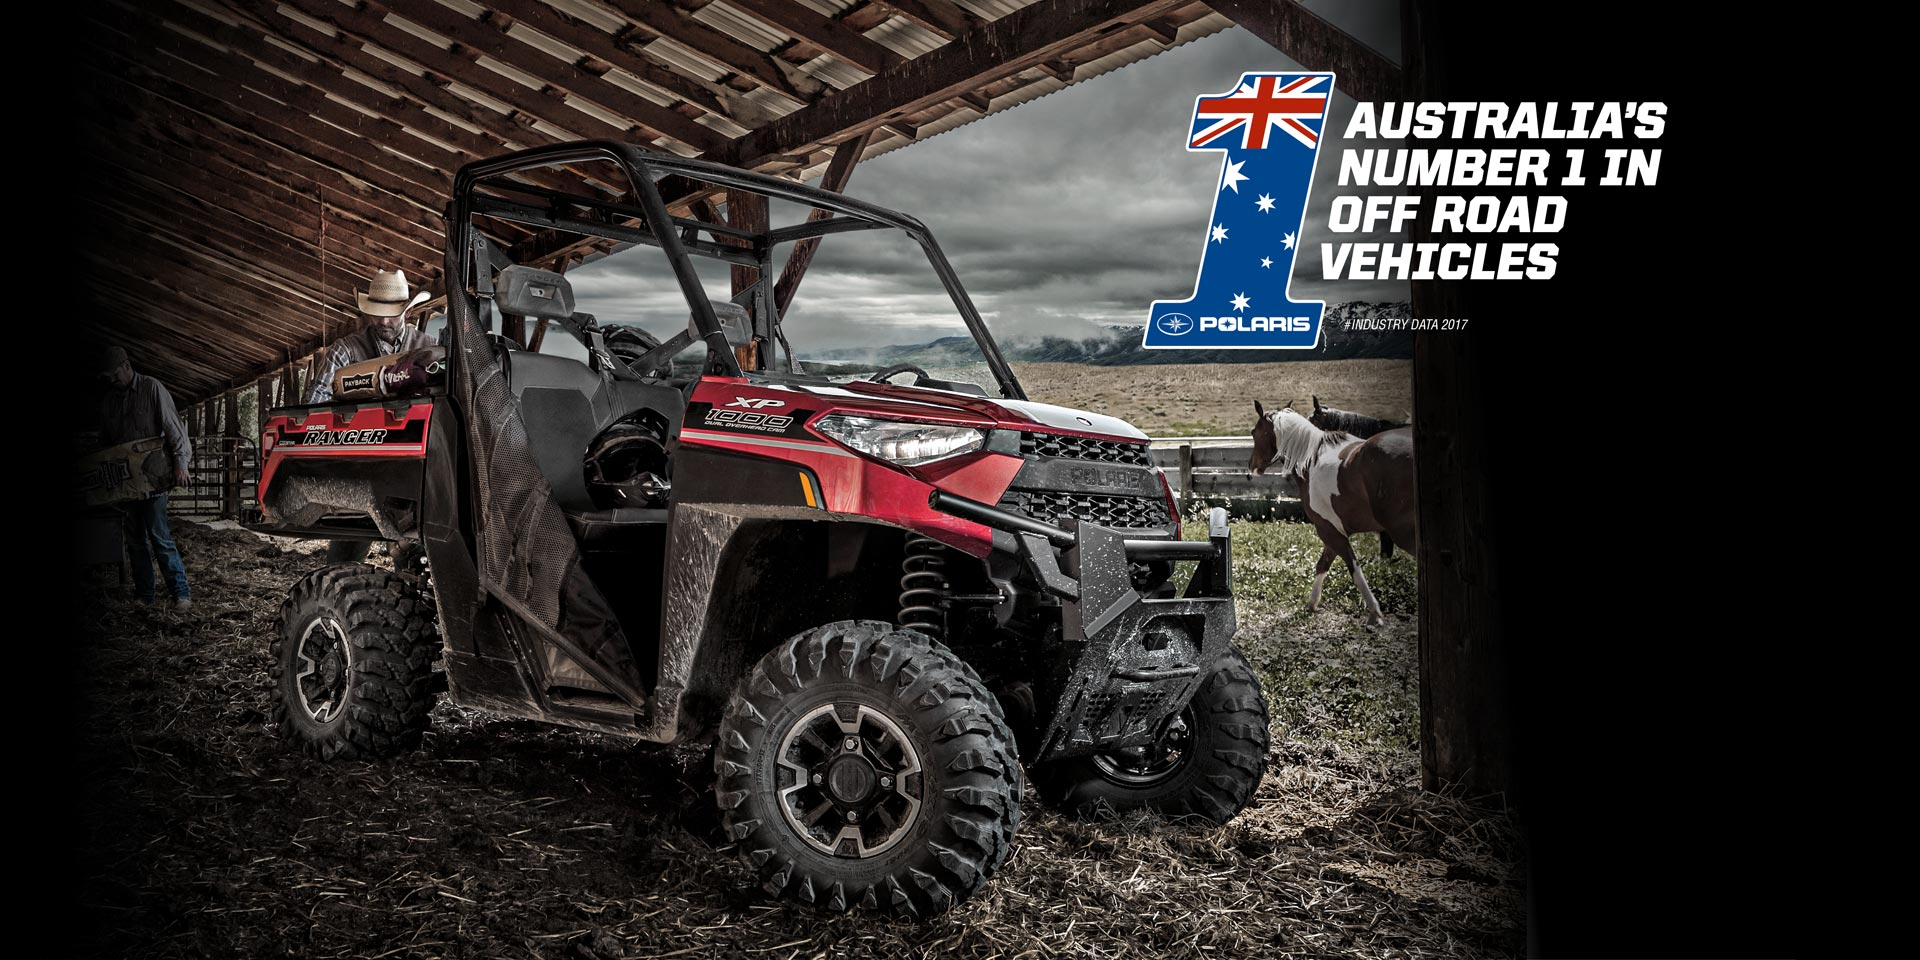 Polaris Au Australia 2006 Sportsman 450 Fuse Box Australias Number 1 In Off Road Vehicles